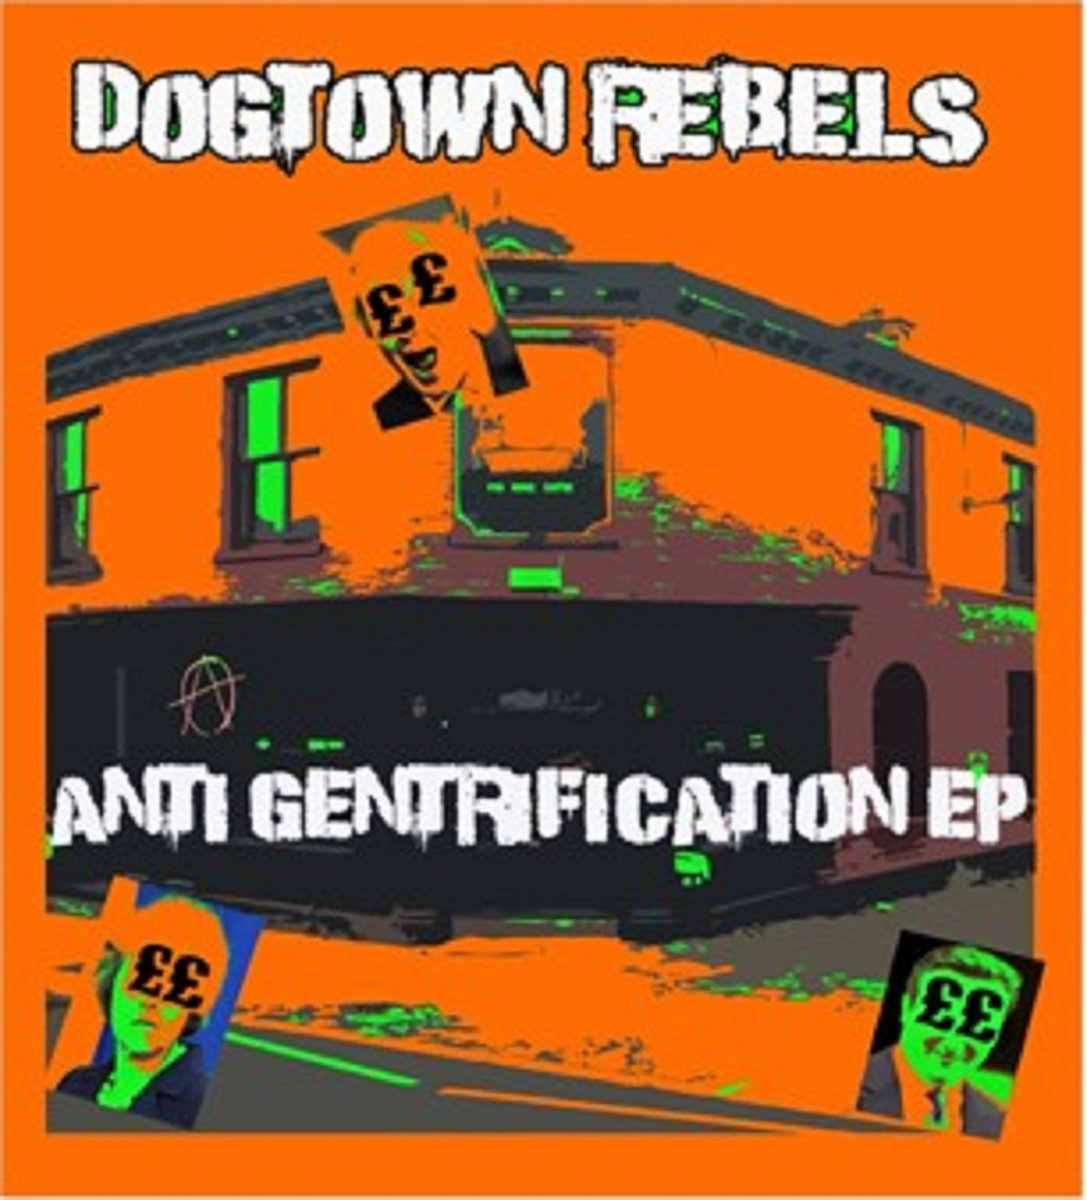 Dogtown Rebels Anti Gentrification